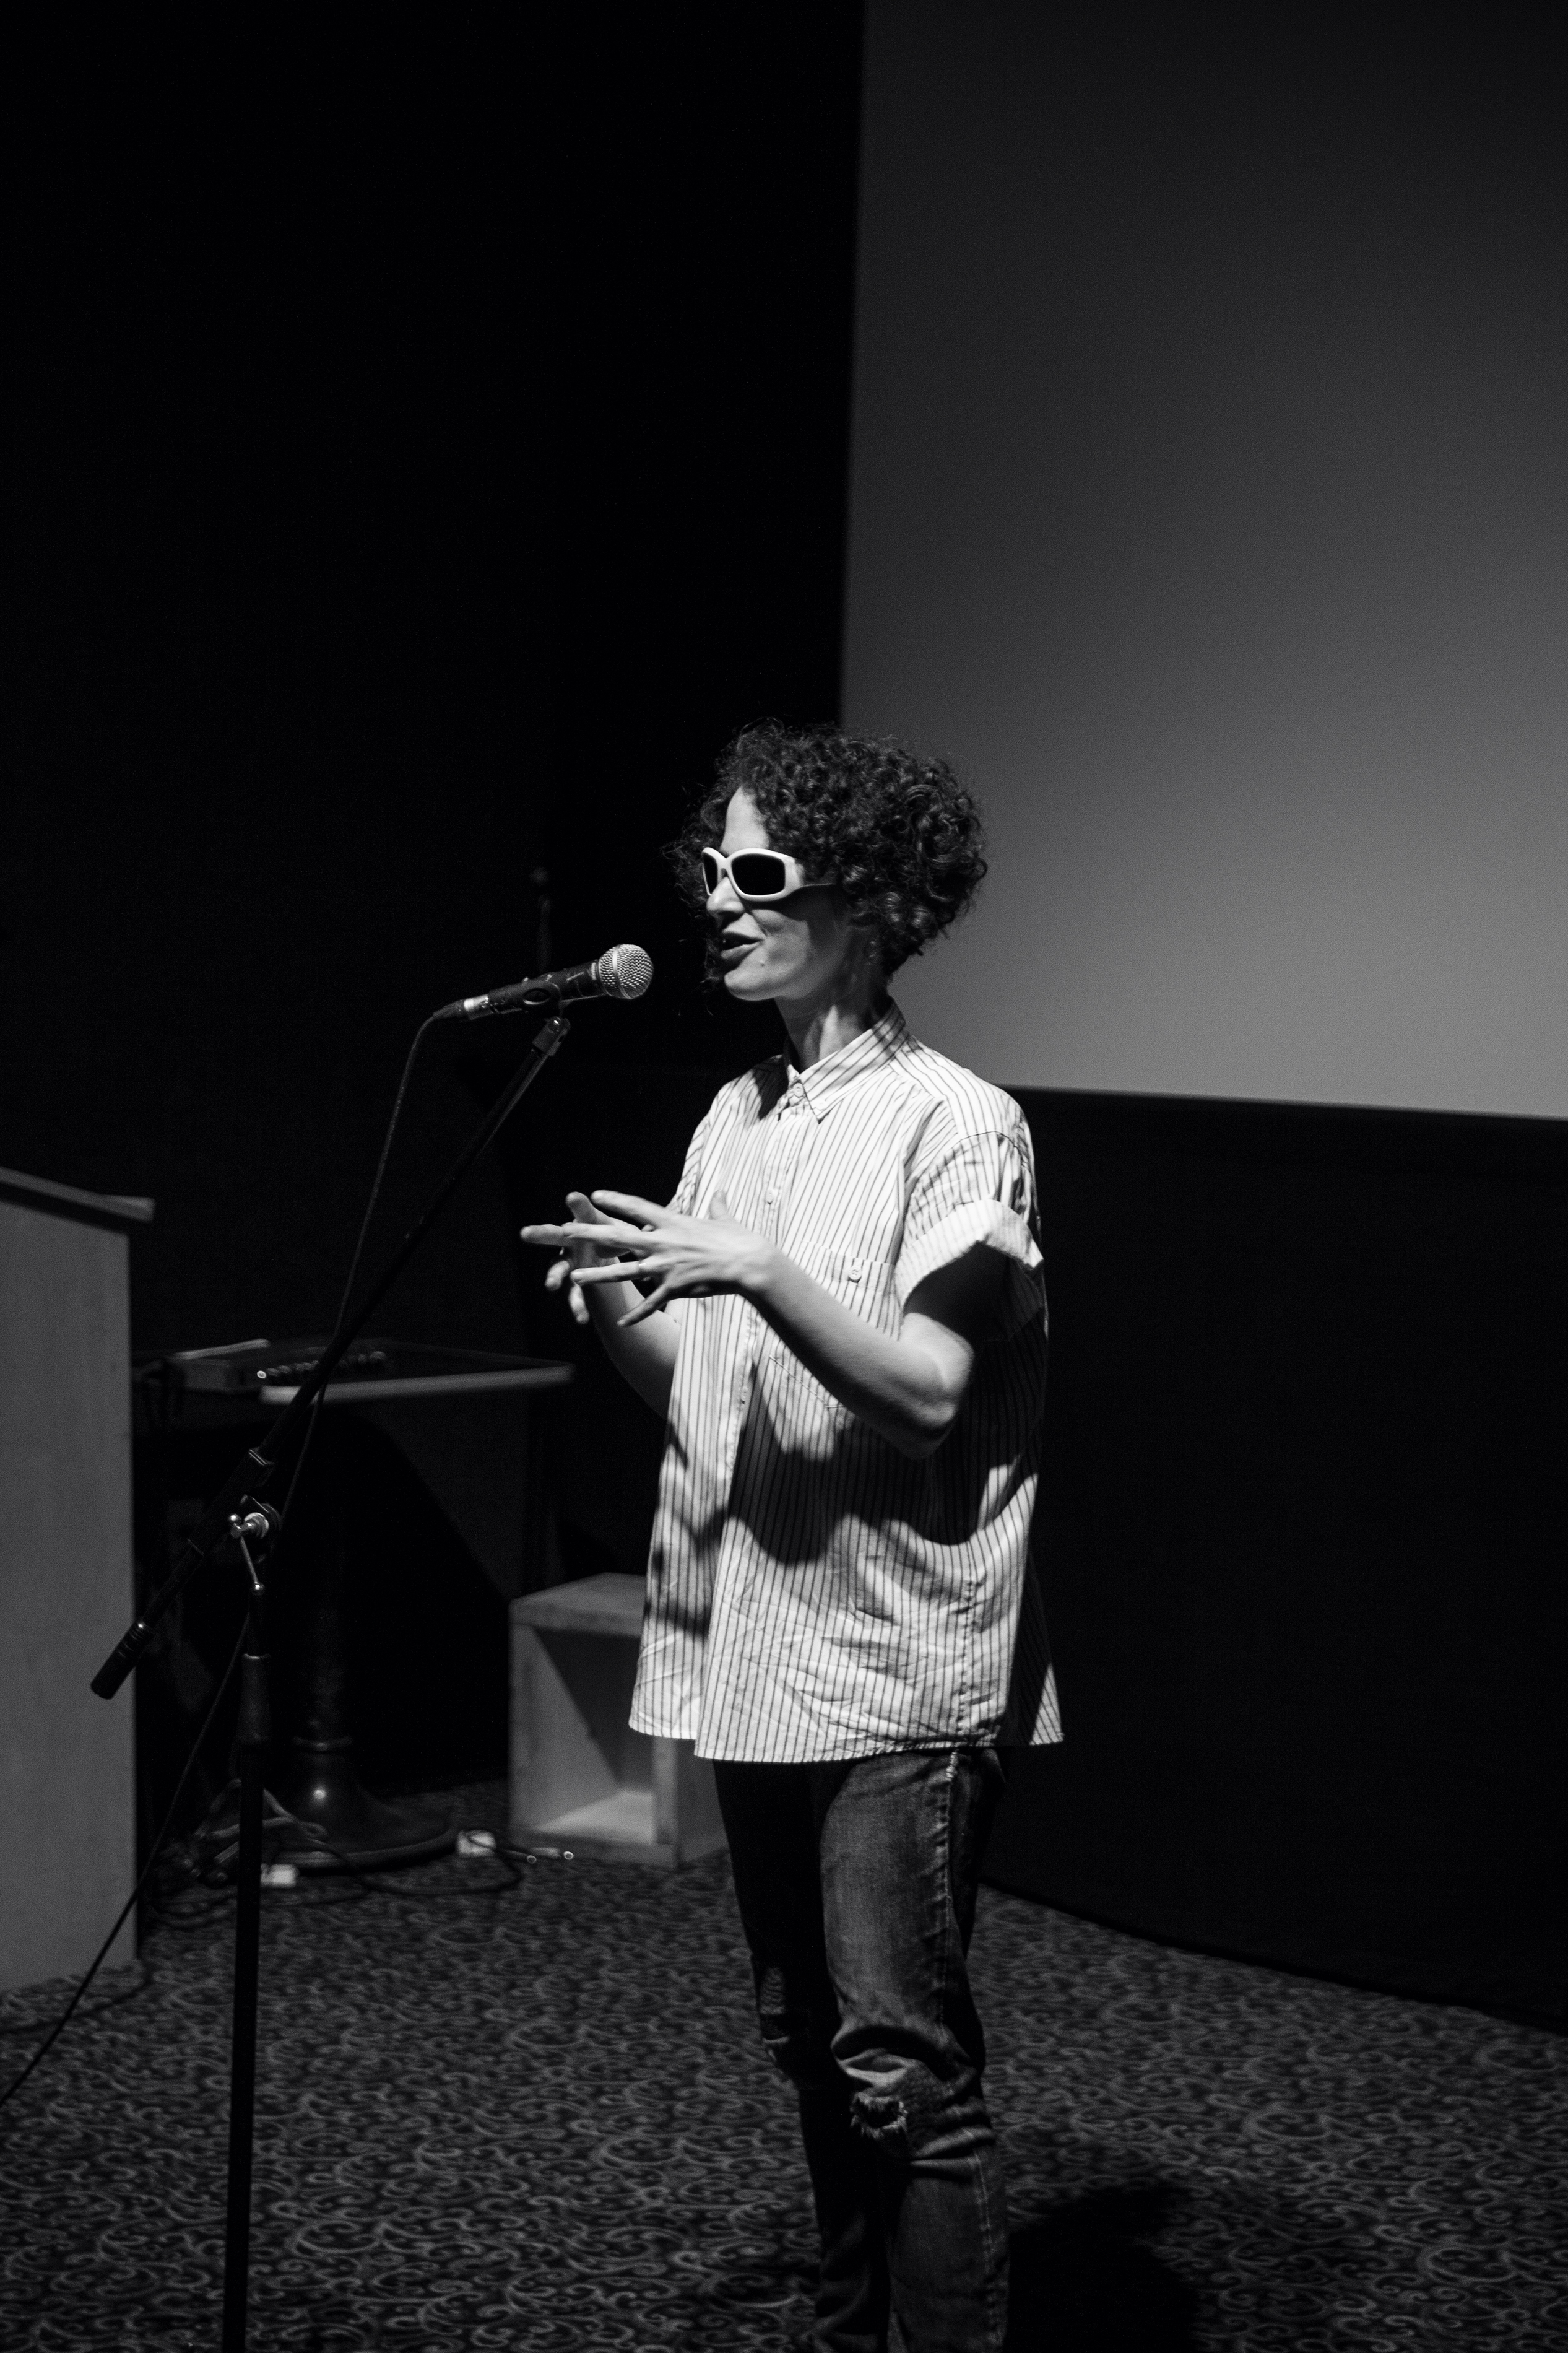 Black and white photo of Aislinn Thomas, a woman with short curly dark hair wearing sunglasses, a loose striped shirt and jeans while speaking at a microphone